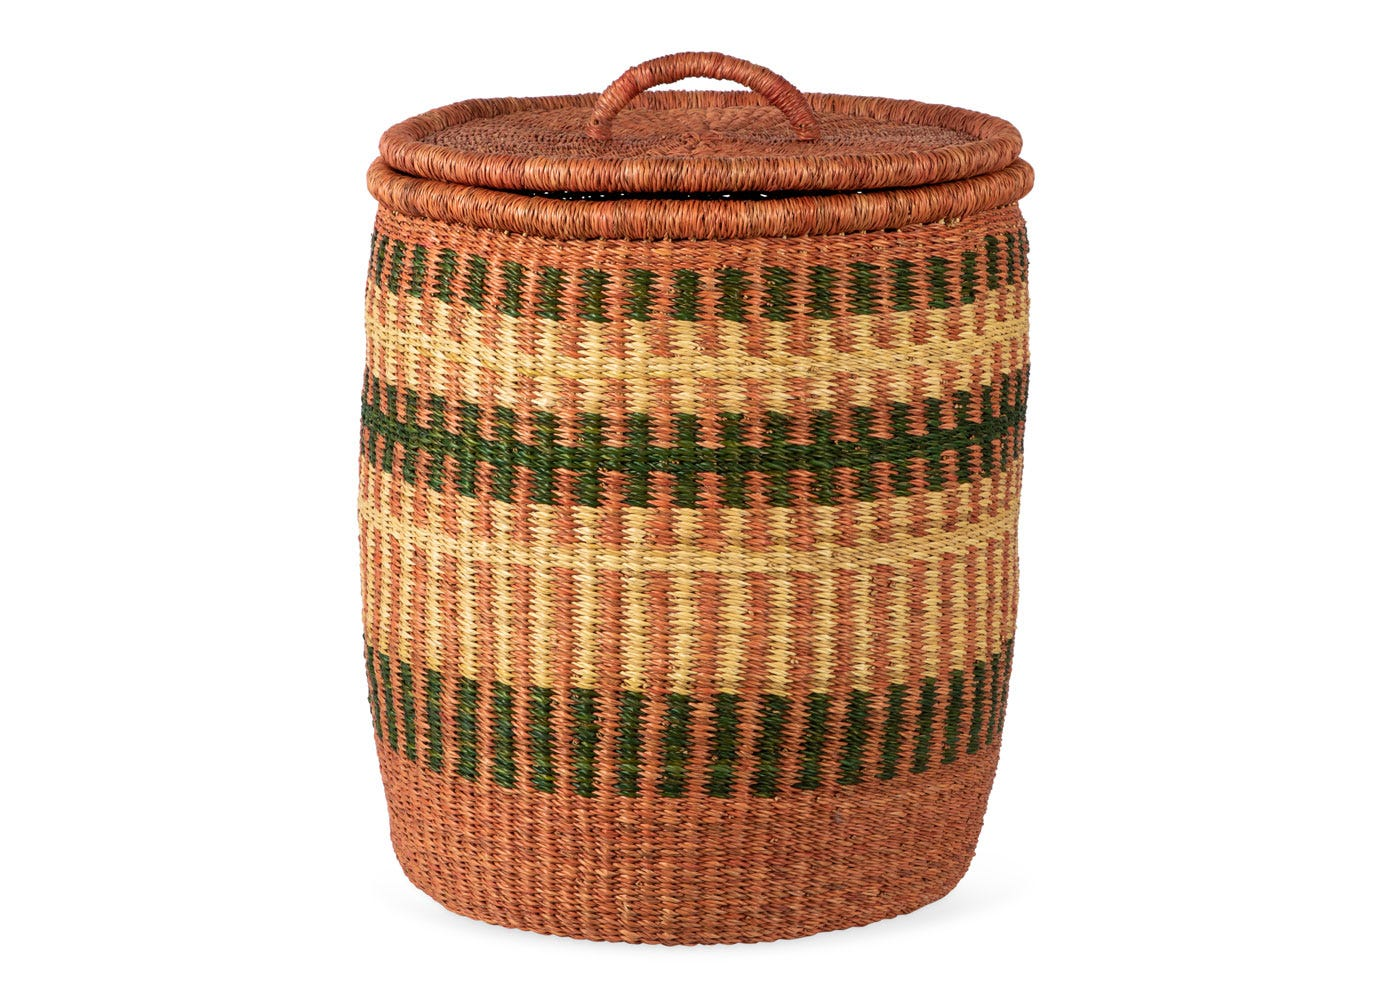 As Shown: Handwoven Laundry Basket in Clay Pink and Green